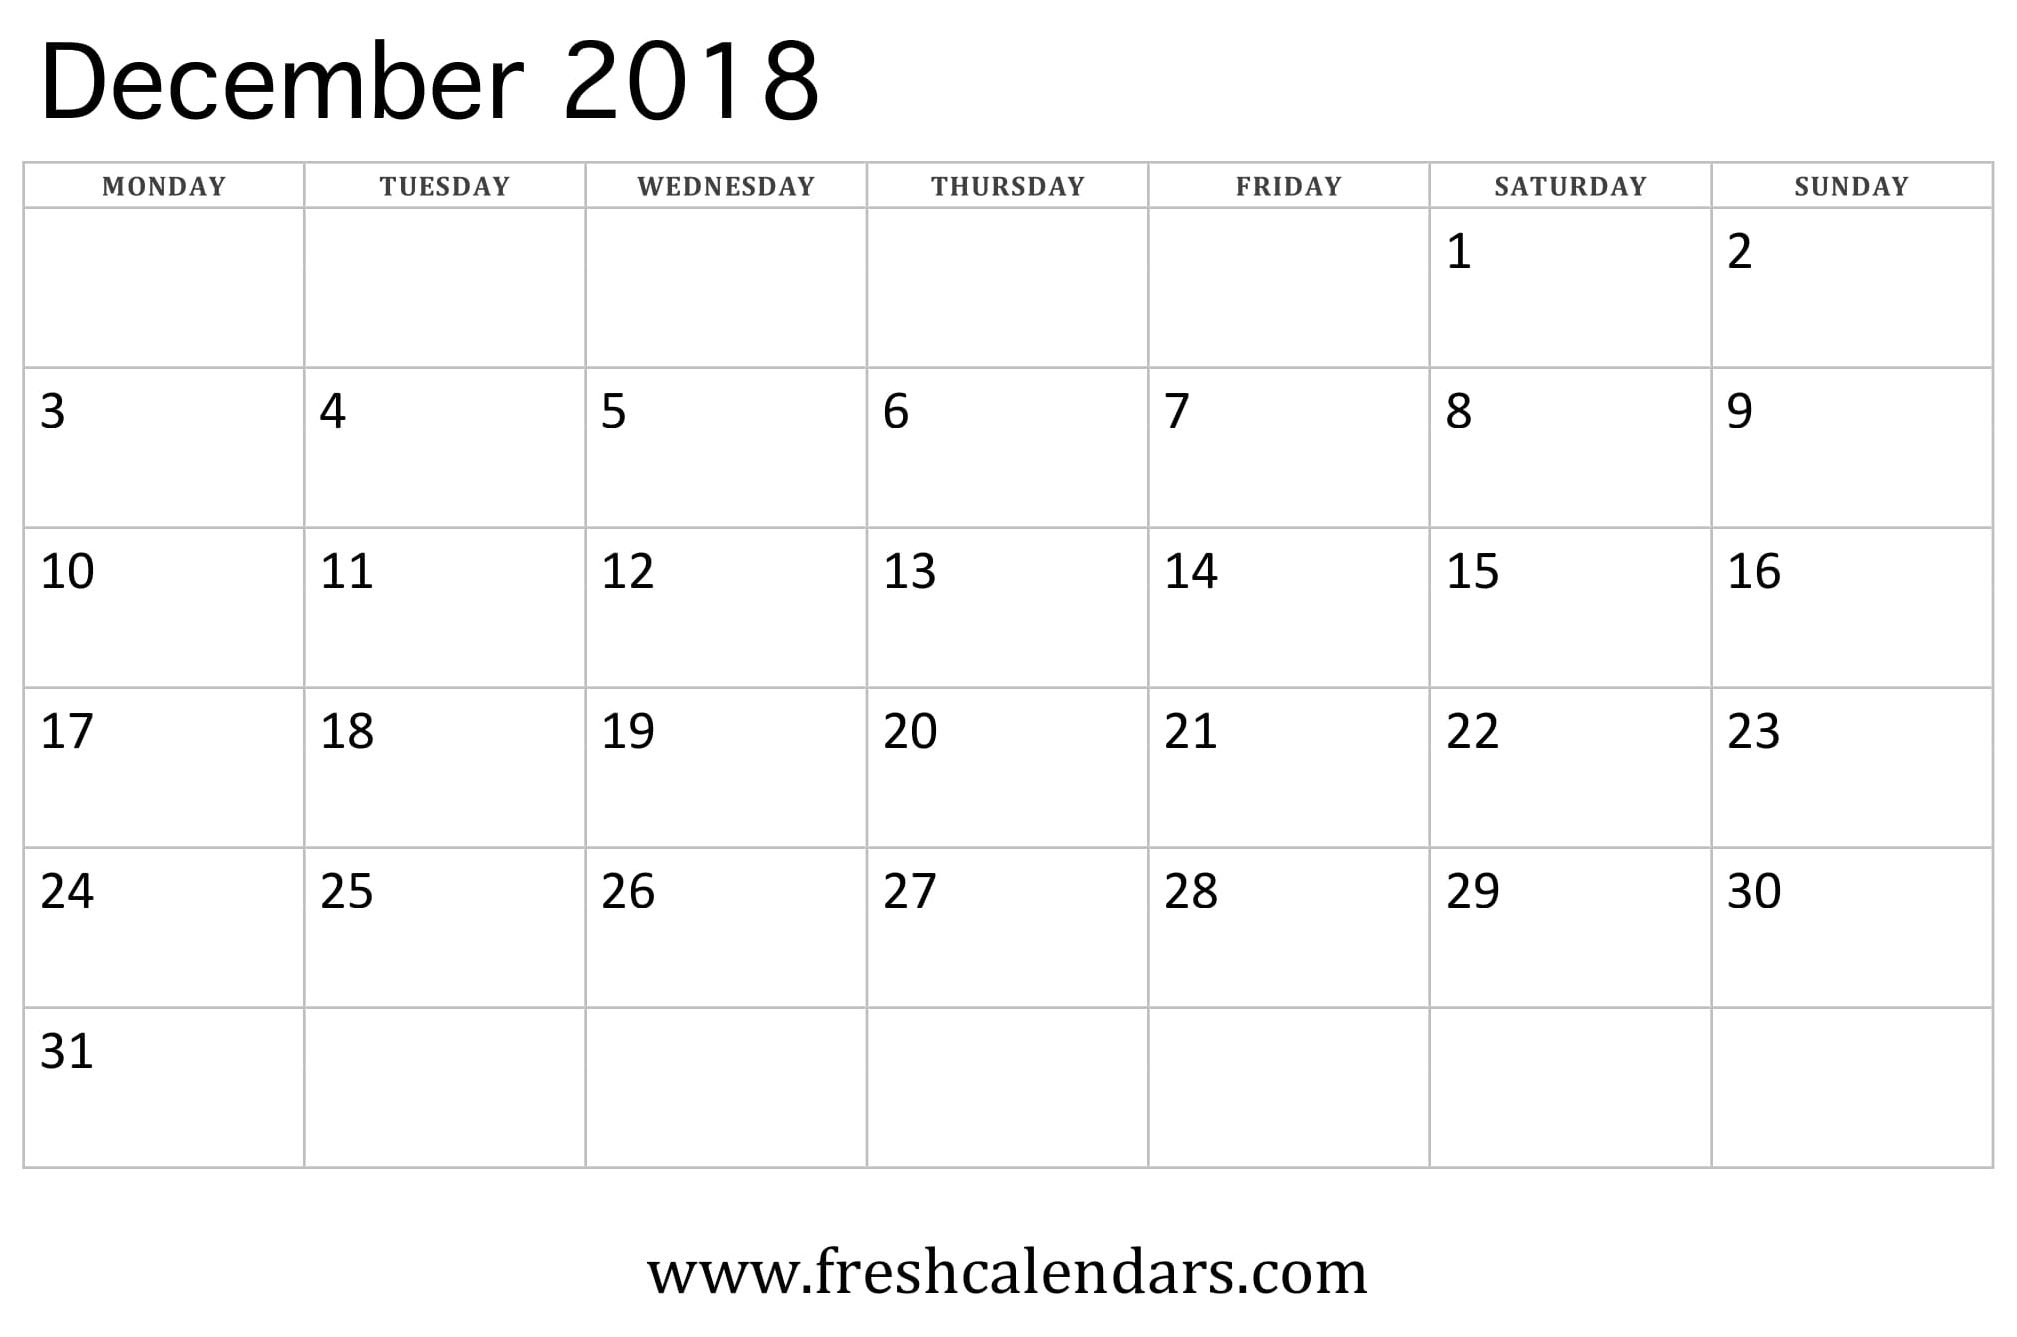 December 2018 Calendar Printable - Fresh Calendars within Blank December Weekly Calander